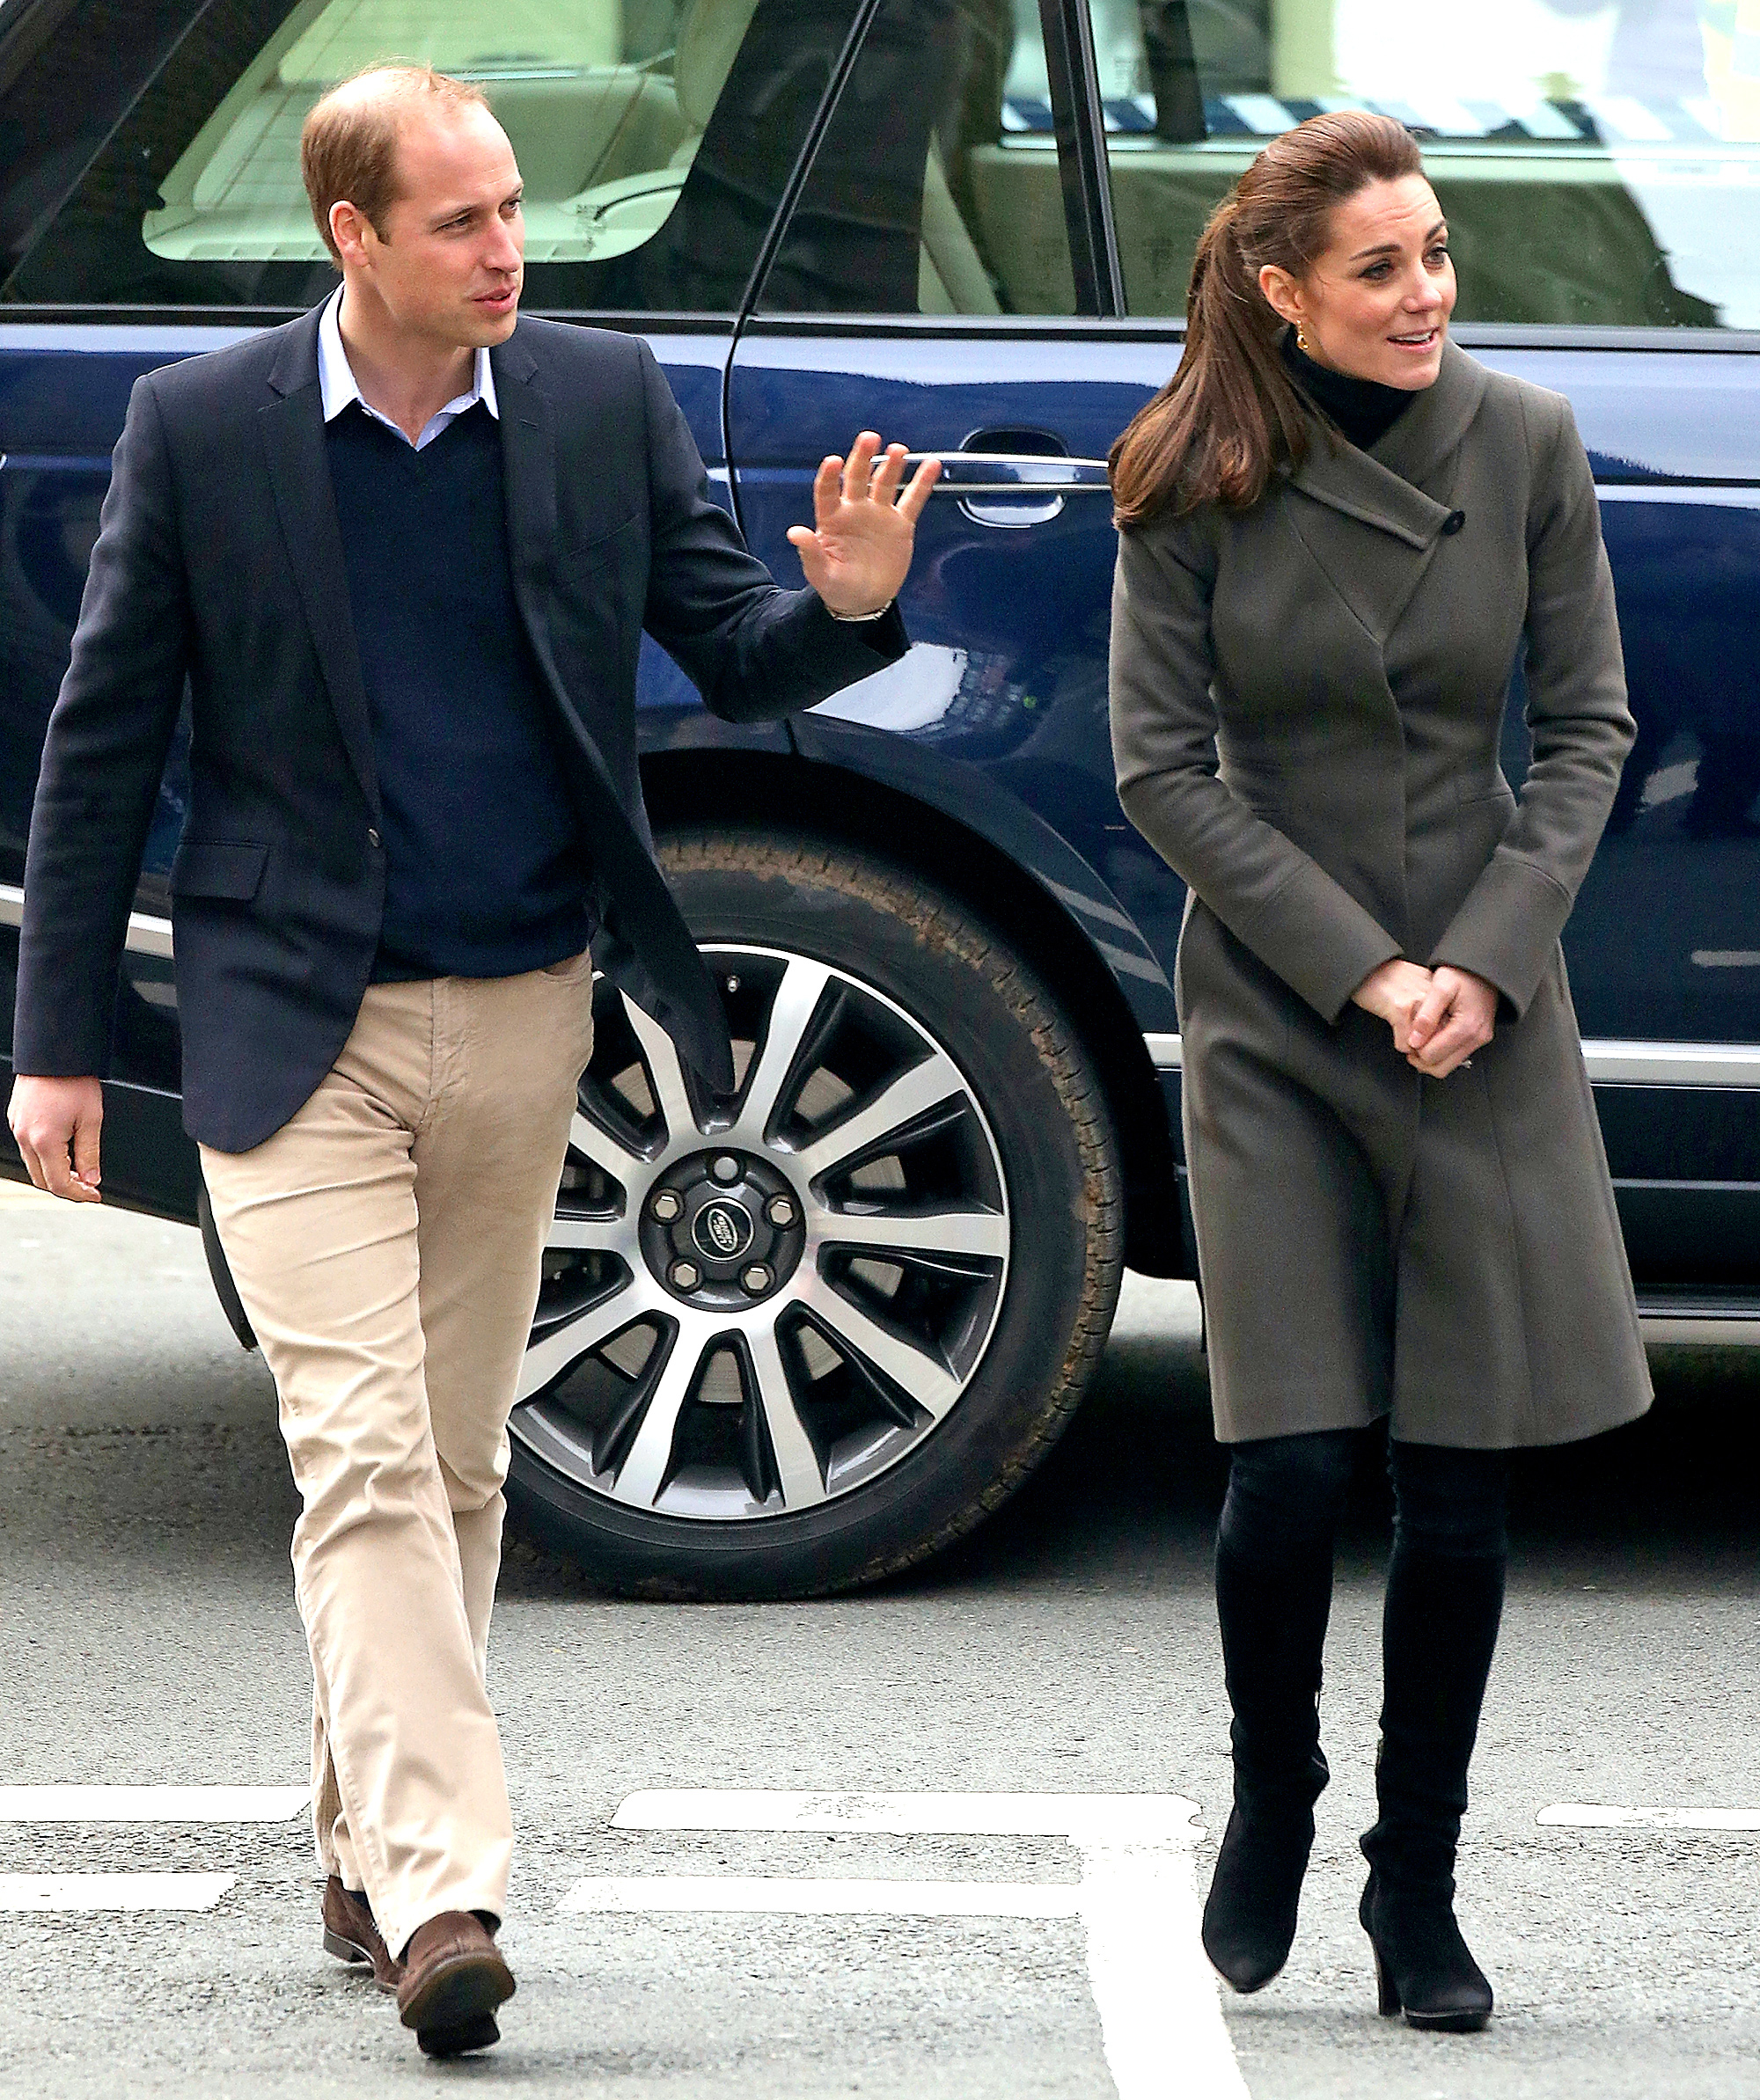 Kate Middleton and Prince William are seen visiting Caernarfon on November 20, 2015 in Caernarfon, United Kingdom.